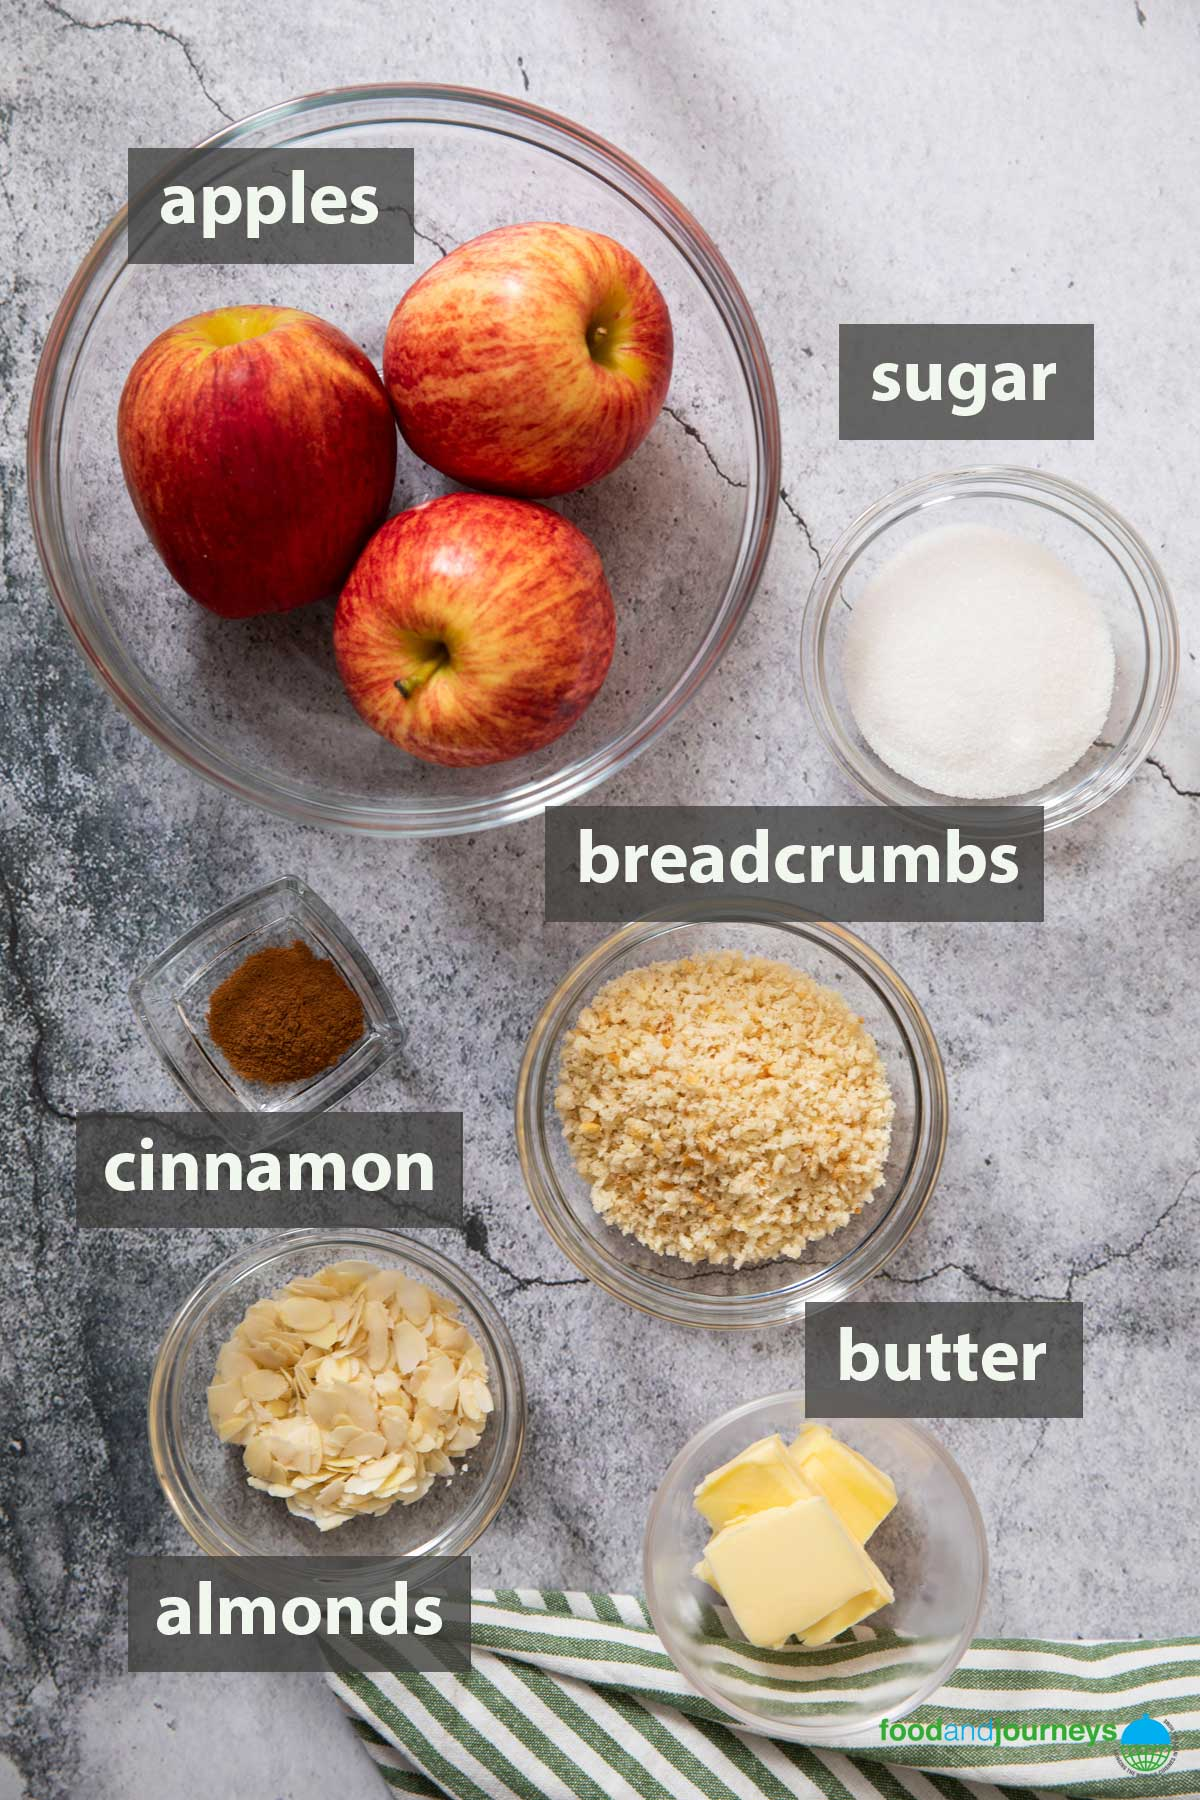 An image showing all the ingredients that you need to prepare Swedish Apple Crumble